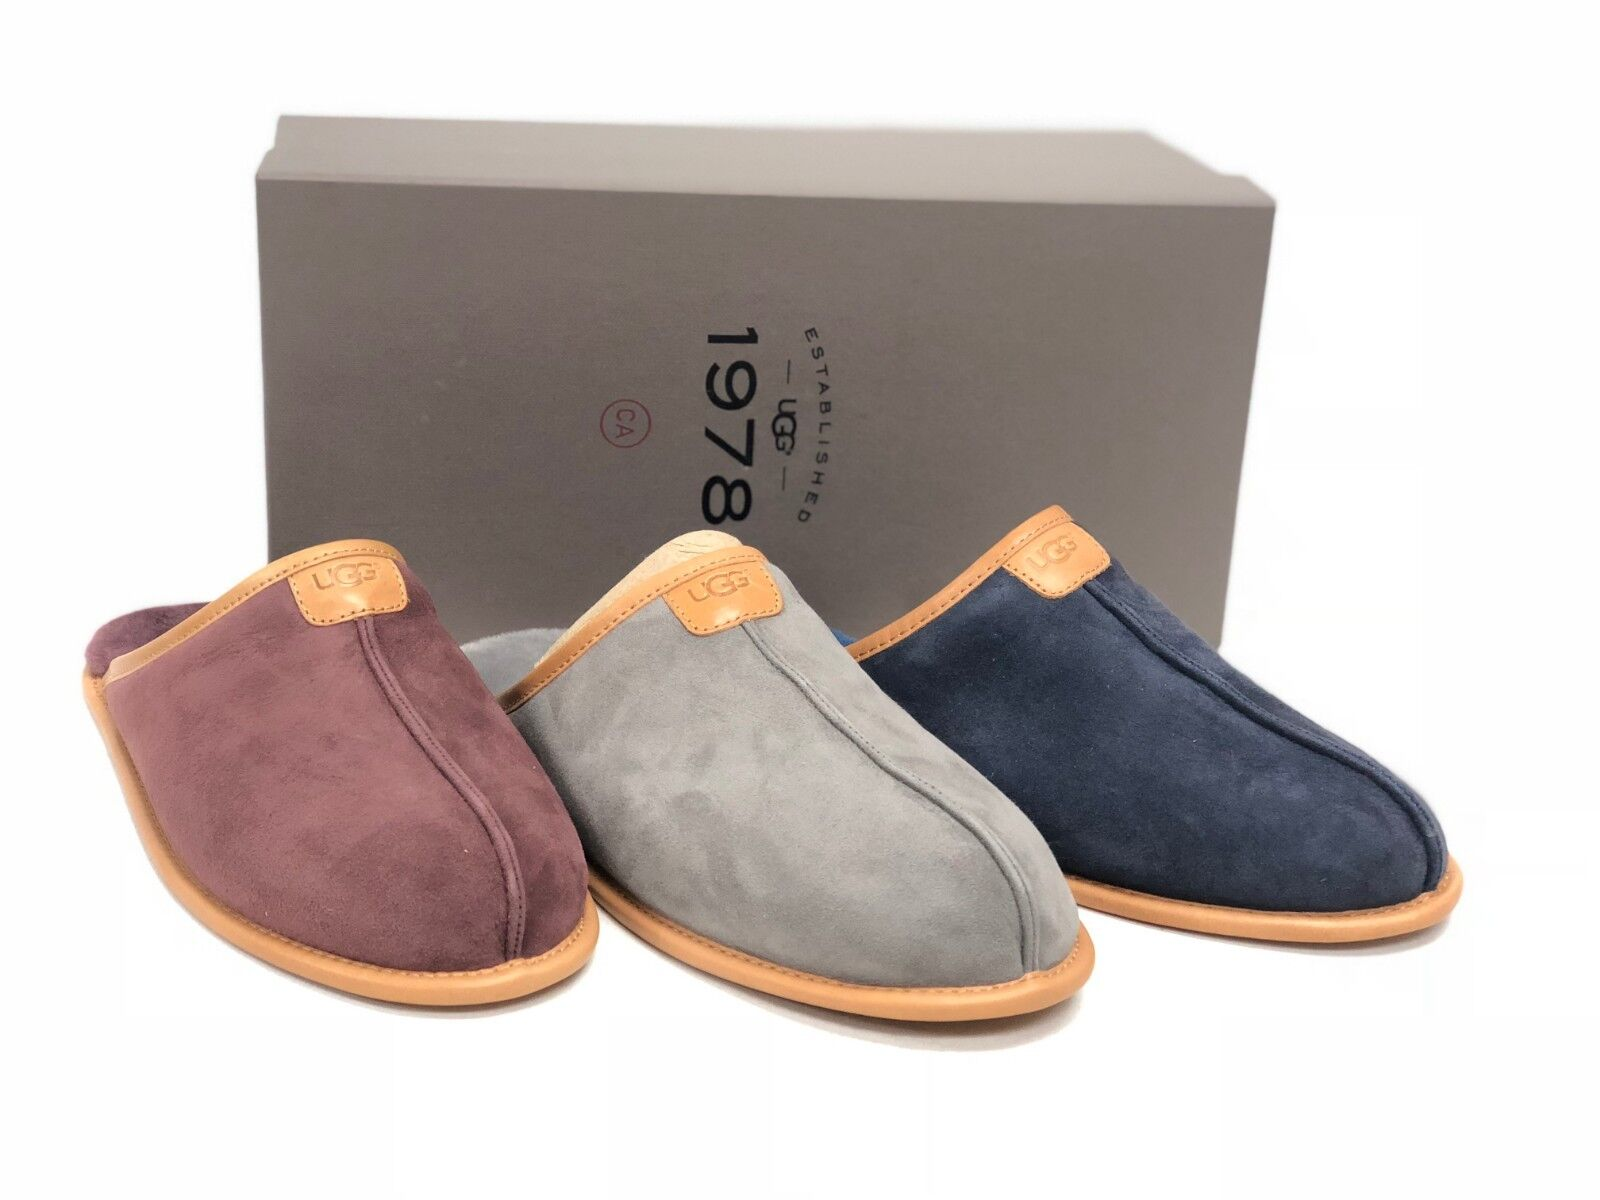 UGG Australia THAYNE 1978 COLLECTION Suede SHEEPSKIN SLIPPERS 1016776 Shoes 1